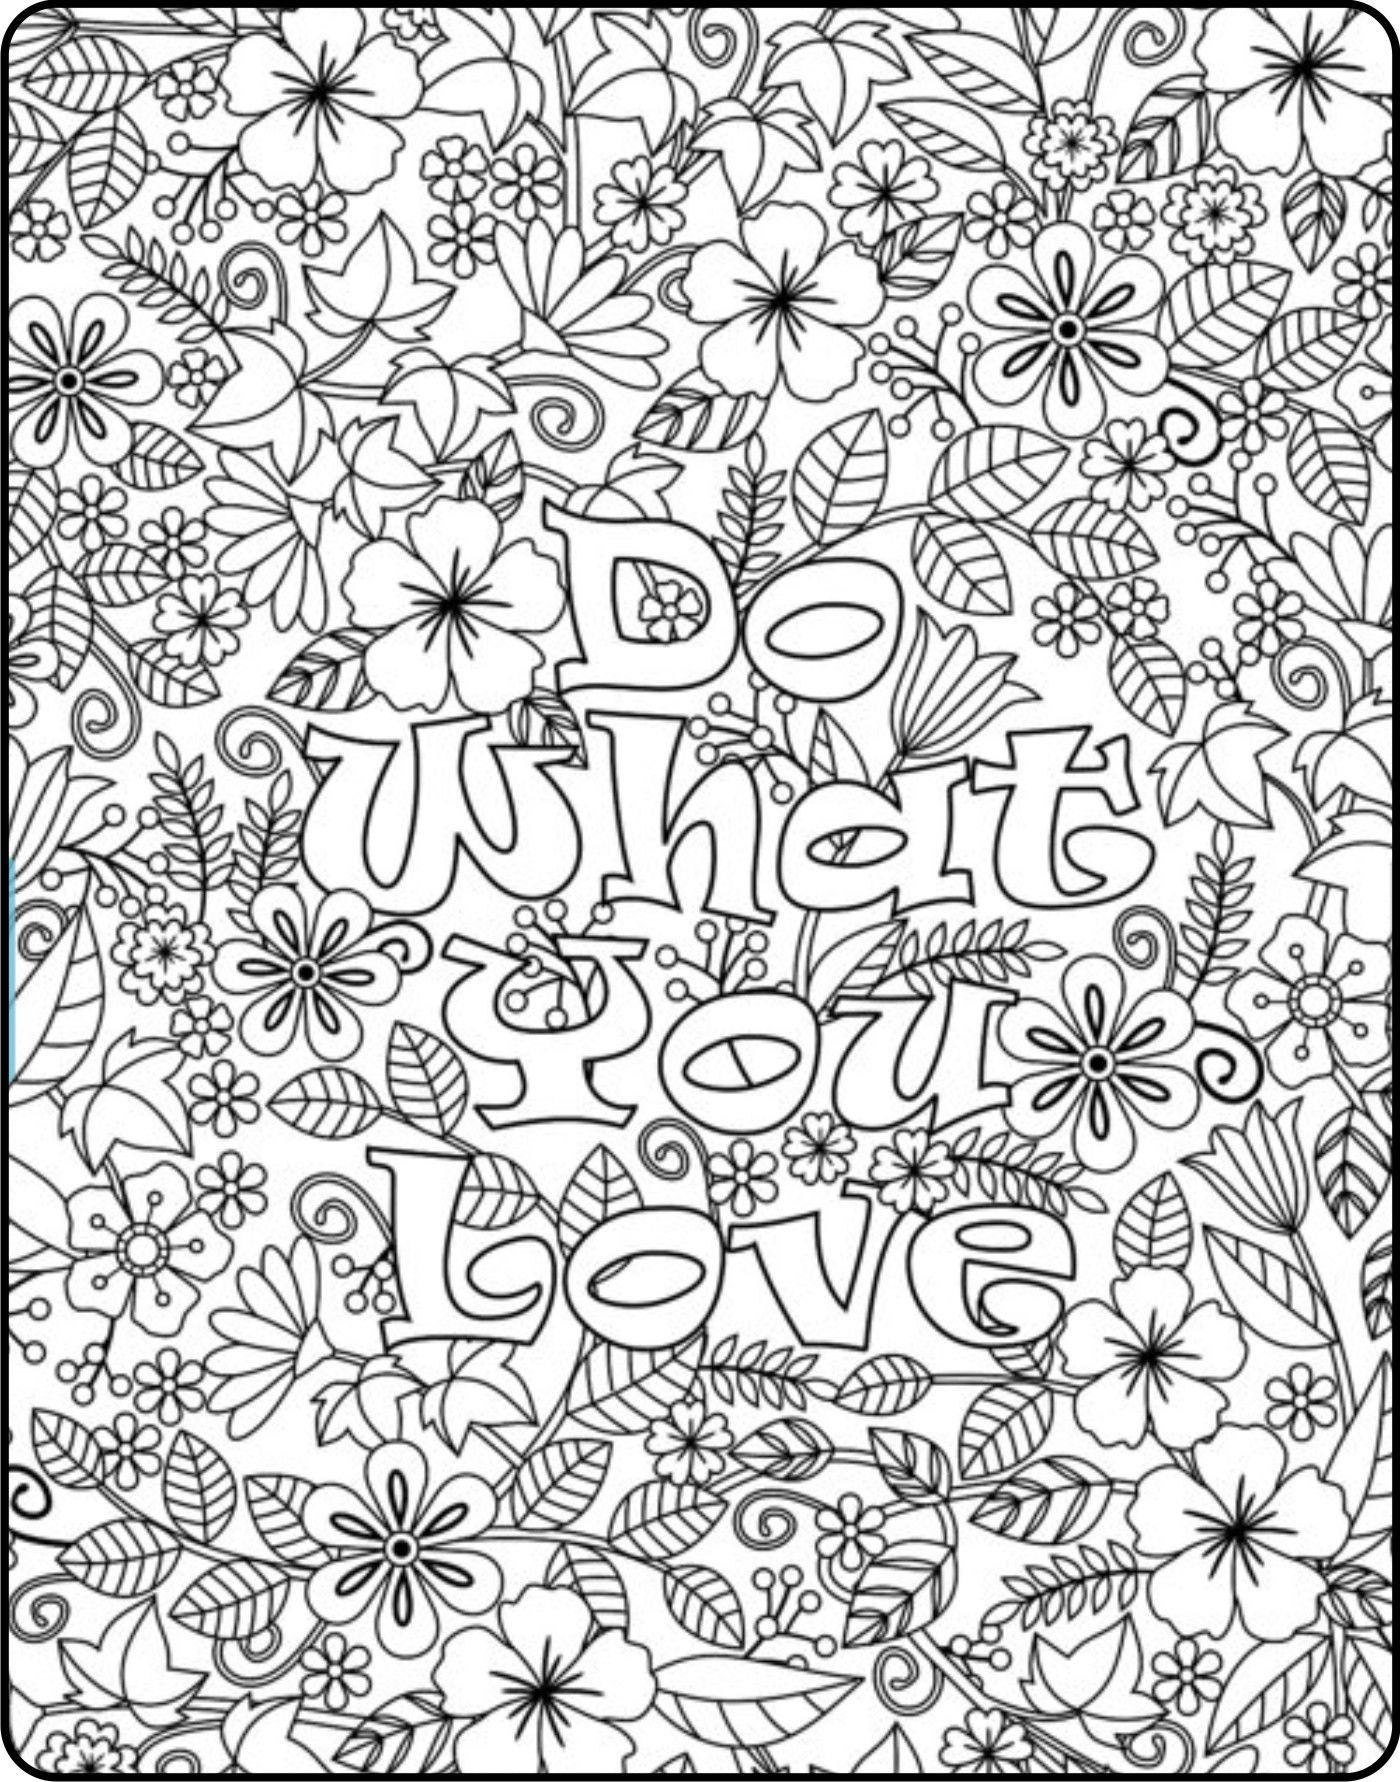 Two Inspirational Coloring Pages - \